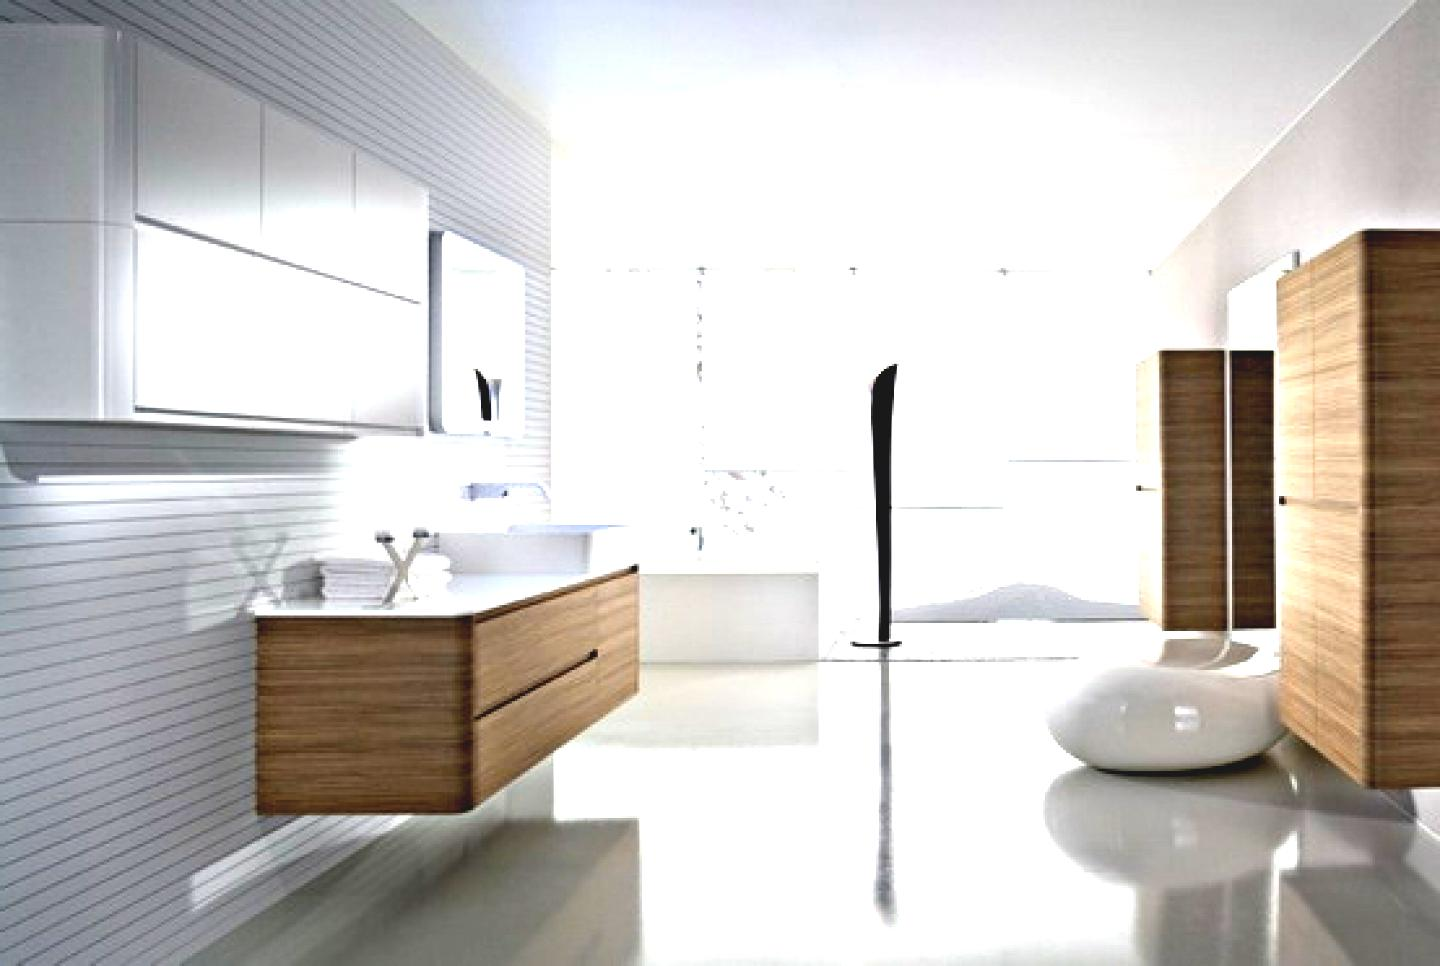 luxury-bathroom-tile-ideas-with-brown-floating-vanity-cabinets-and-white-double-sink-also-shiny-tiles-flooring-and-glass-wall-curtains